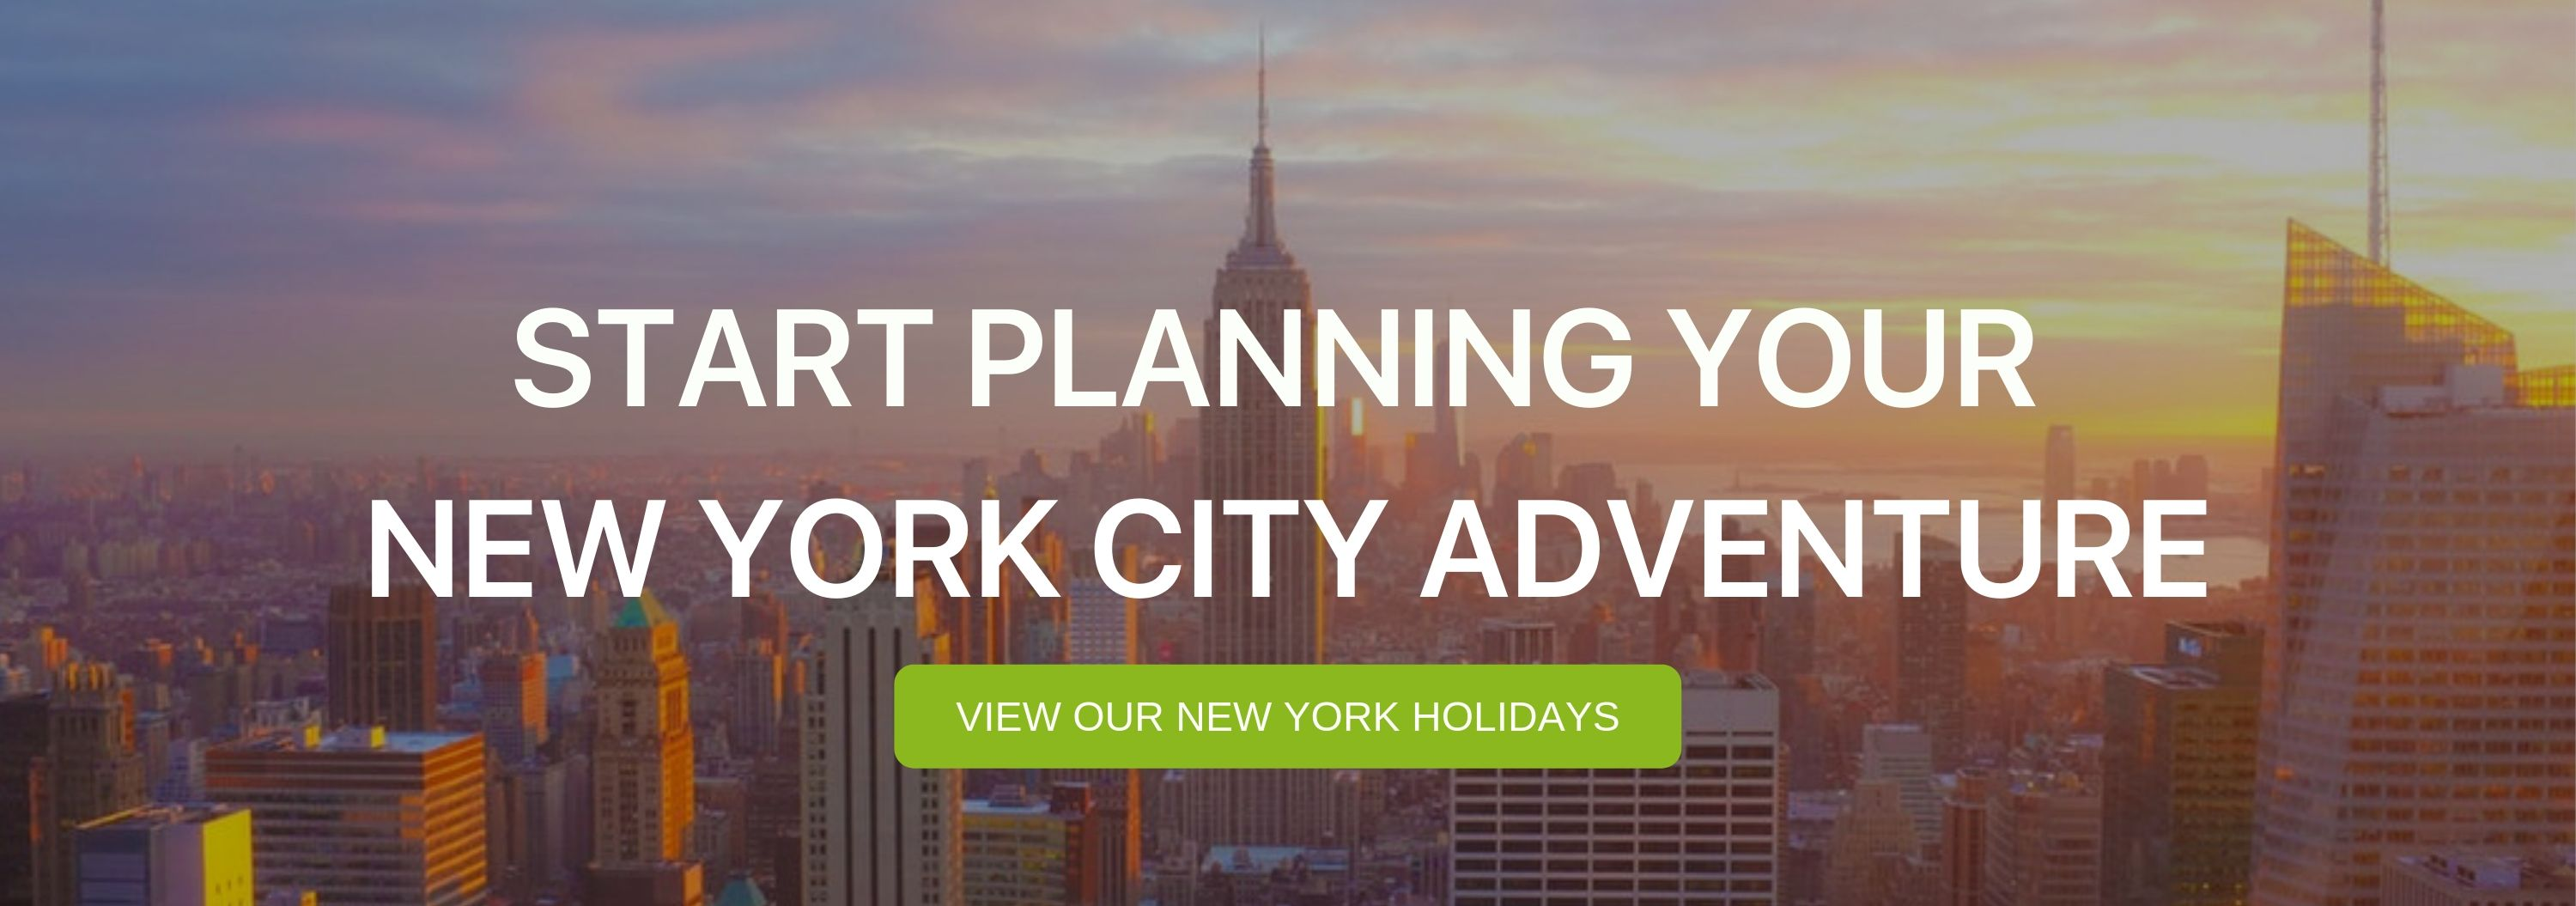 "A banner that says ""Start Planning your New York City Adventure"""